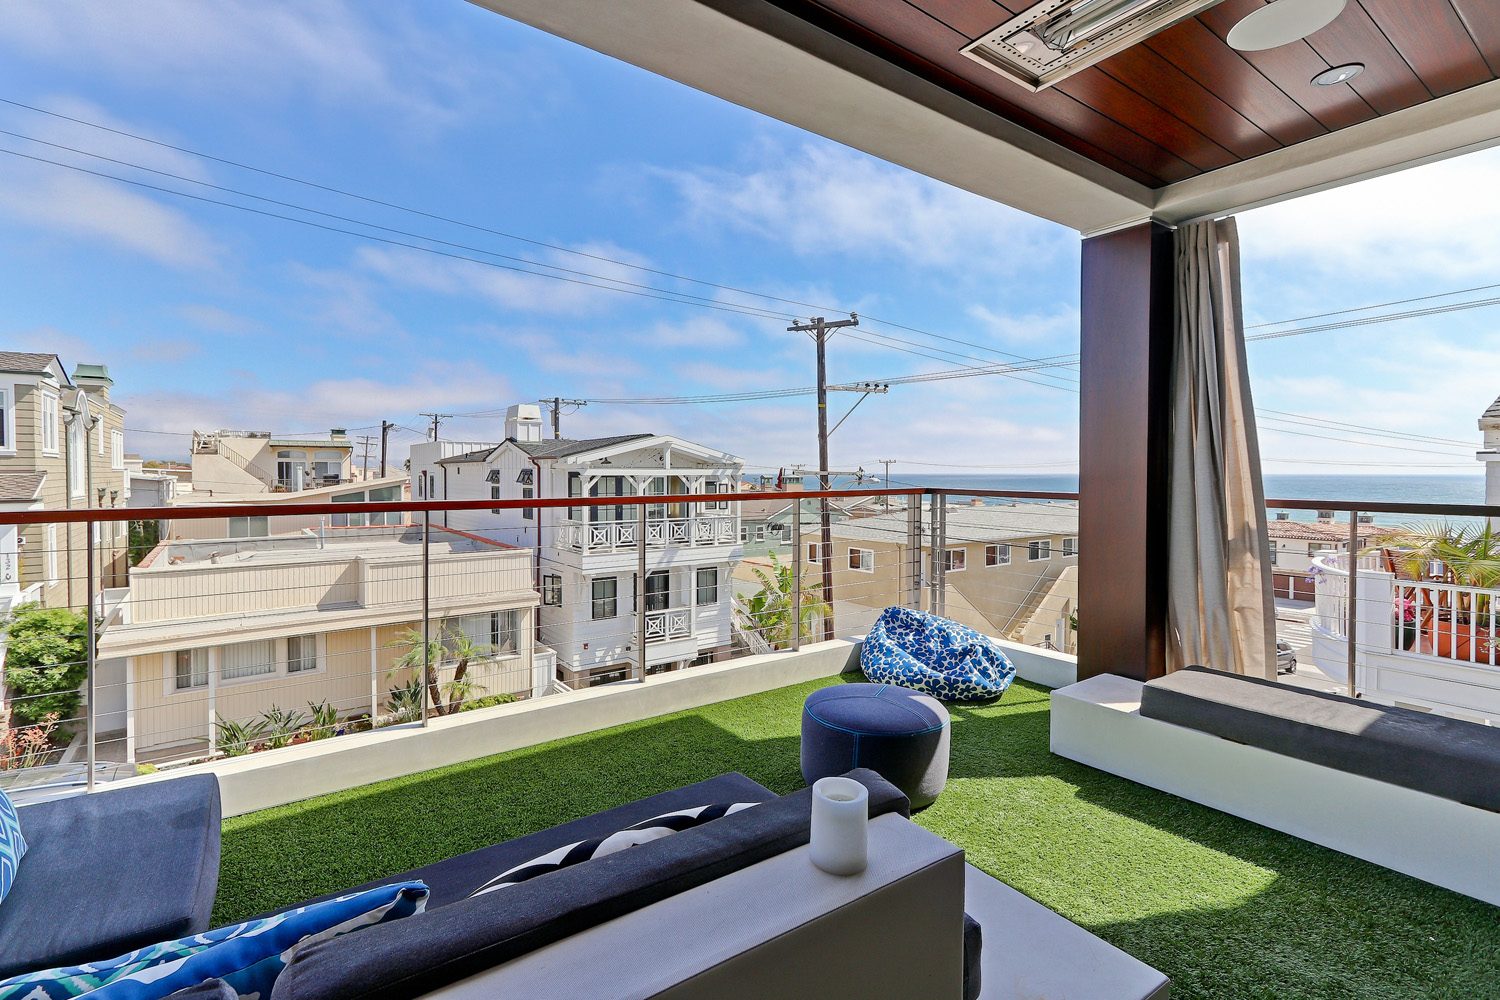 Additional photo for property listing at Modern in Hermosa 123 28th St, Hermosa Beach, CA 90254 何尔磨沙海滩, 加利福尼亚州,90254 美国